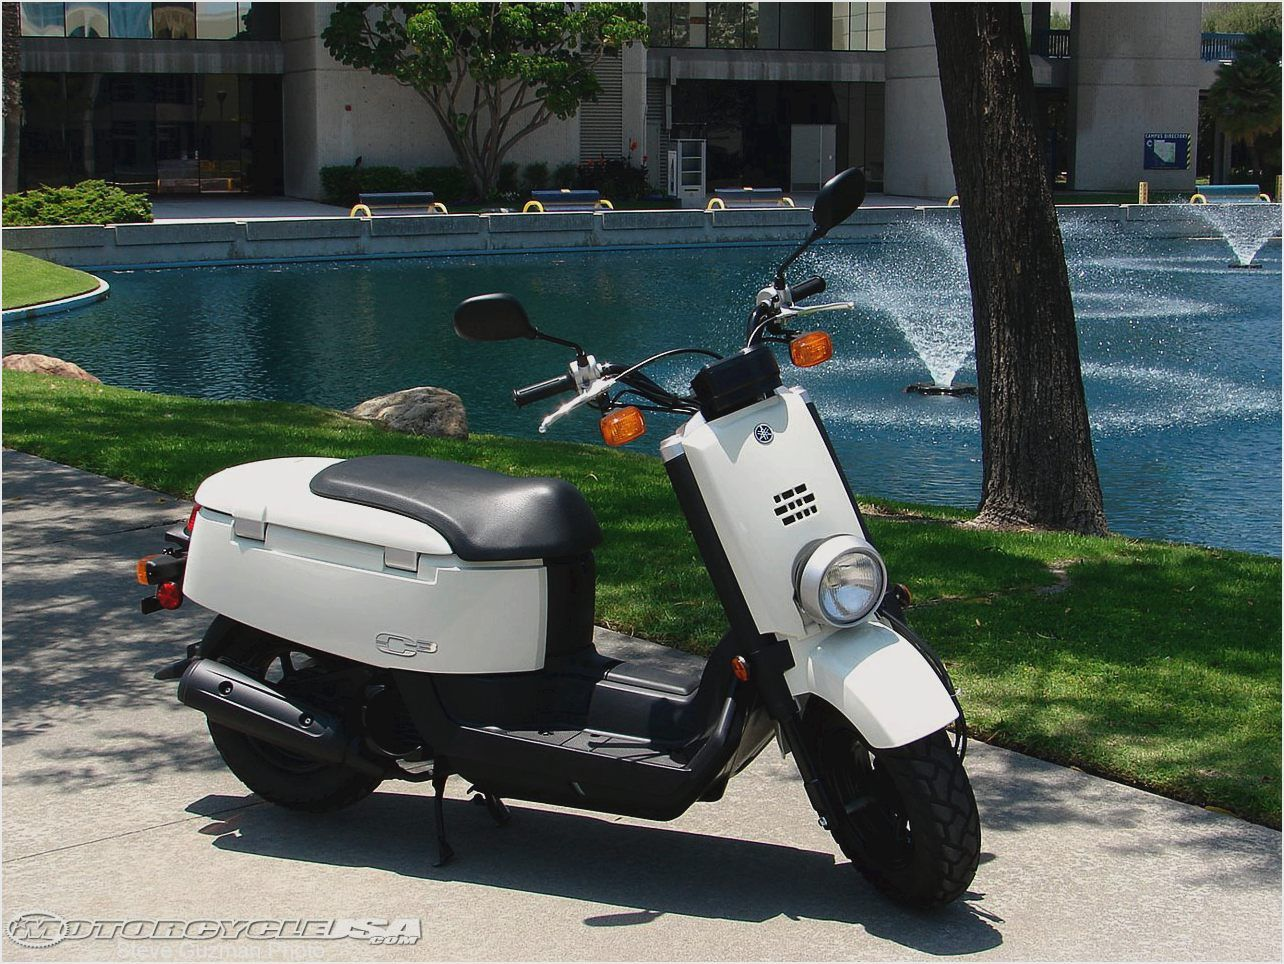 2008 Yamaha C3 Scooter Review on Countersteer